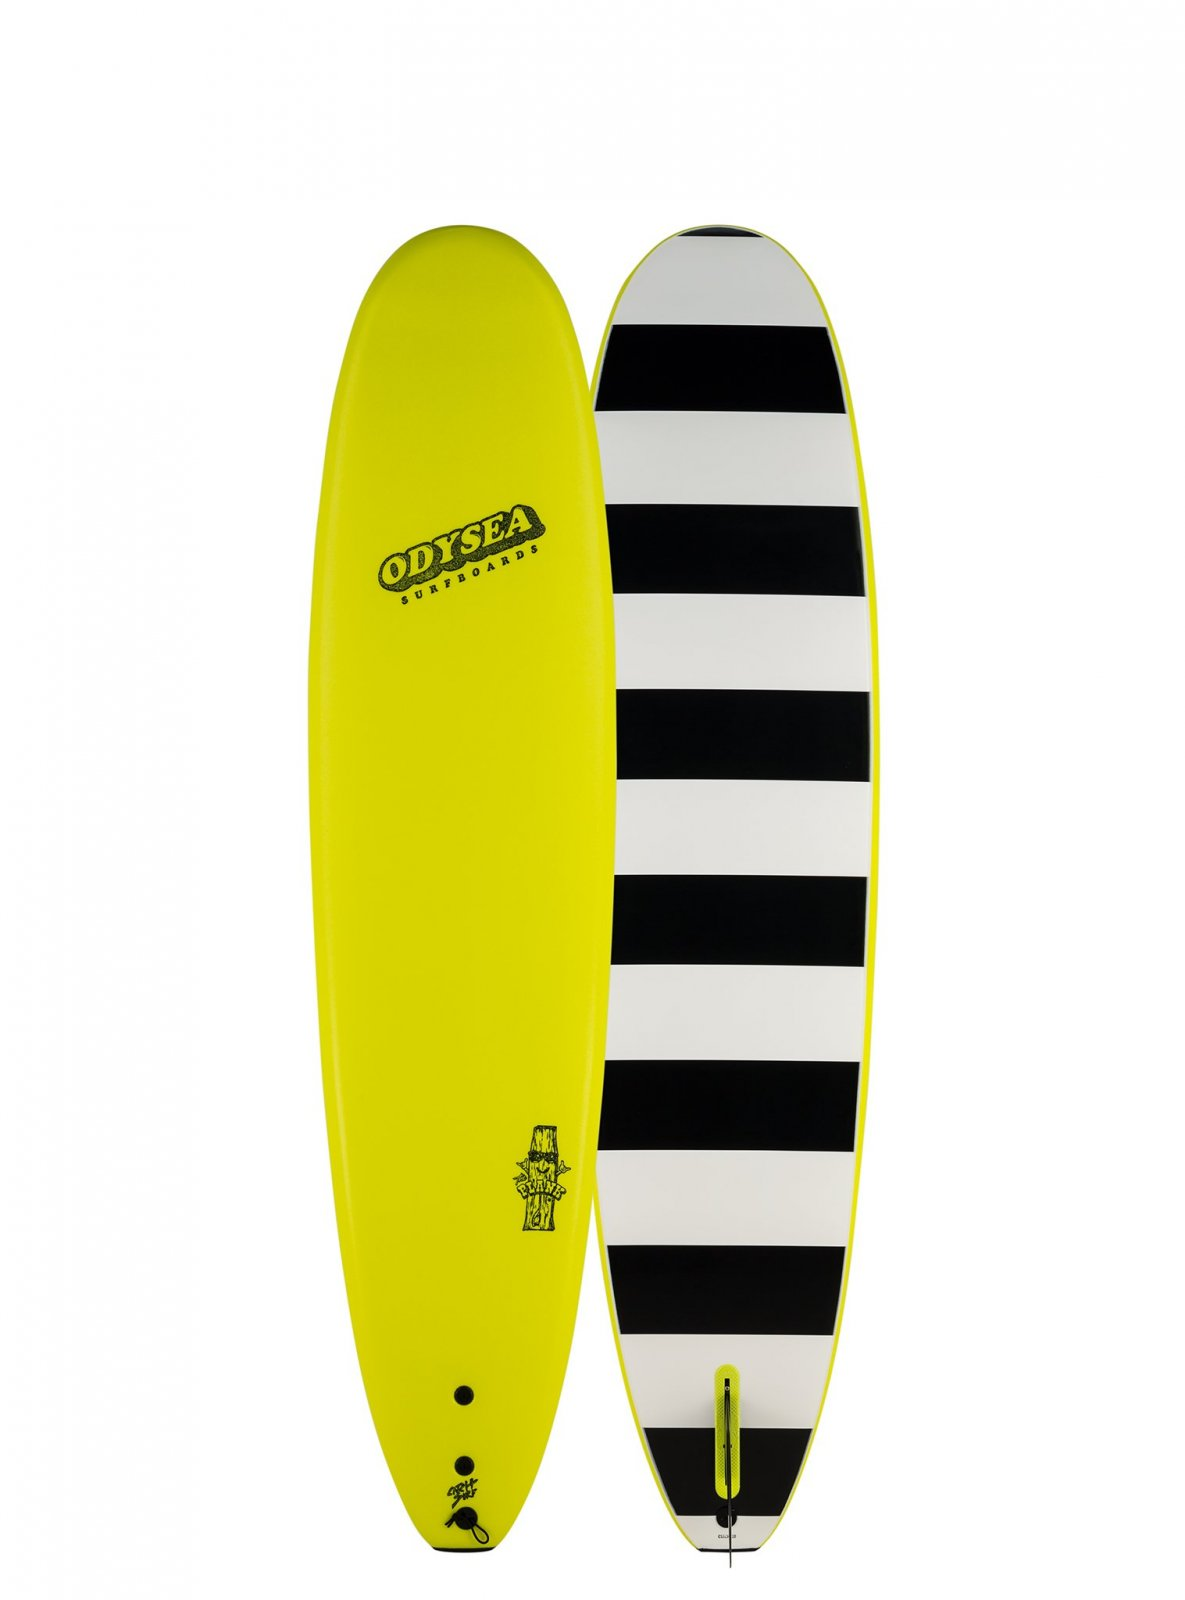 2020 Odysea 7-0 Plank - Single Fin